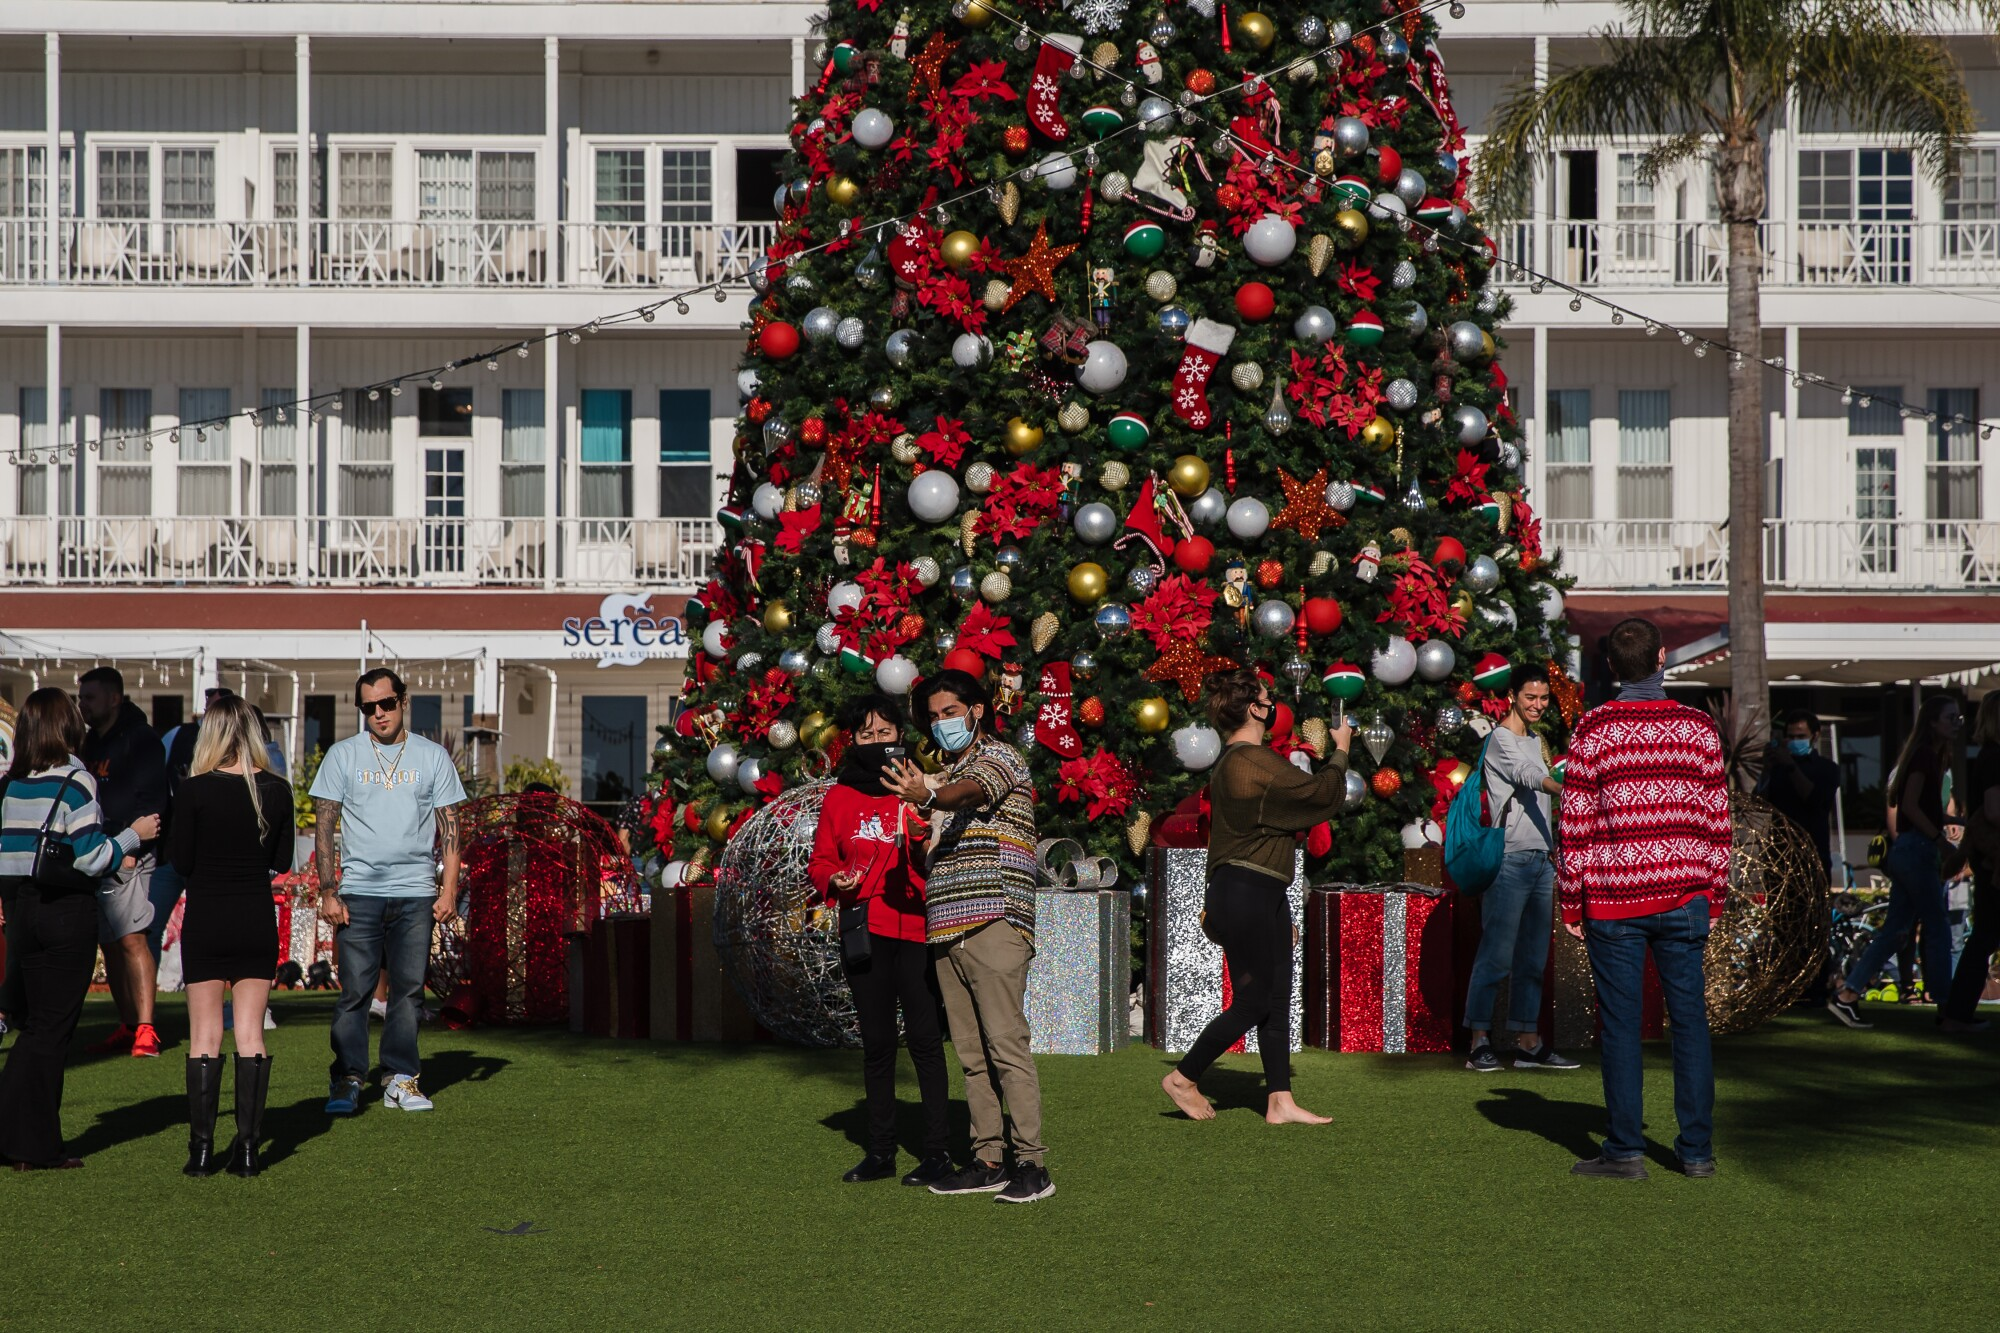 People around the Christmas tree at Hotel del Coronado on December 25, 2020.